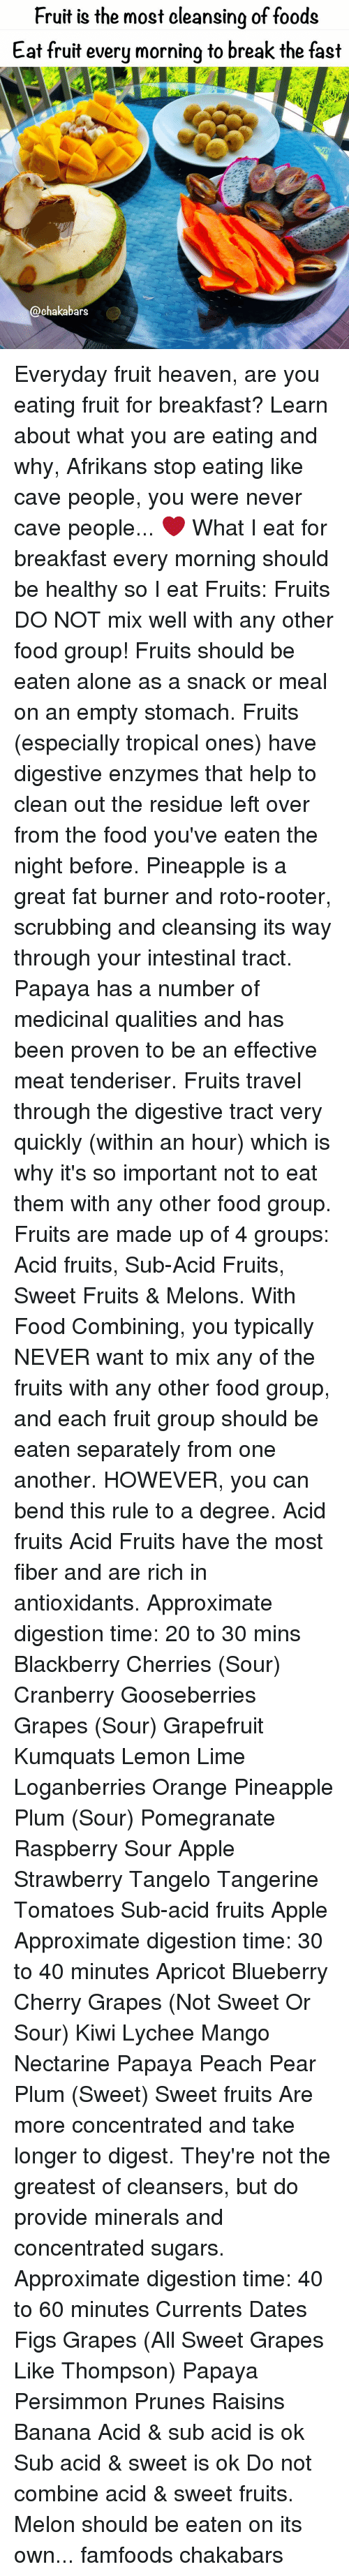 food groups: Fruit is the most cleansing of foods  Eat fruit every morning to break the fast  @ehakabars Everyday fruit heaven, are you eating fruit for breakfast? Learn about what you are eating and why, Afrikans stop eating like cave people, you were never cave people... ❤️ What I eat for breakfast every morning should be healthy so I eat Fruits: Fruits DO NOT mix well with any other food group! Fruits should be eaten alone as a snack or meal on an empty stomach. Fruits (especially tropical ones) have digestive enzymes that help to clean out the residue left over from the food you've eaten the night before. Pineapple is a great fat burner and roto-rooter, scrubbing and cleansing its way through your intestinal tract. Papaya has a number of medicinal qualities and has been proven to be an effective meat tenderiser. Fruits travel through the digestive tract very quickly (within an hour) which is why it's so important not to eat them with any other food group. Fruits are made up of 4 groups: Acid fruits, Sub-Acid Fruits, Sweet Fruits & Melons. With Food Combining, you typically NEVER want to mix any of the fruits with any other food group, and each fruit group should be eaten separately from one another. HOWEVER, you can bend this rule to a degree. Acid fruits Acid Fruits have the most fiber and are rich in antioxidants. Approximate digestion time: 20 to 30 mins Blackberry Cherries (Sour) Cranberry Gooseberries Grapes (Sour) Grapefruit Kumquats Lemon Lime Loganberries Orange Pineapple Plum (Sour) Pomegranate Raspberry Sour Apple Strawberry Tangelo Tangerine Tomatoes Sub-acid fruits Apple Approximate digestion time: 30 to 40 minutes Apricot Blueberry Cherry Grapes (Not Sweet Or Sour) Kiwi Lychee Mango Nectarine Papaya Peach Pear Plum (Sweet) Sweet fruits Are more concentrated and take longer to digest. They're not the greatest of cleansers, but do provide minerals and concentrated sugars. Approximate digestion time: 40 to 60 minutes Currents Dates Figs Grapes (All Swe